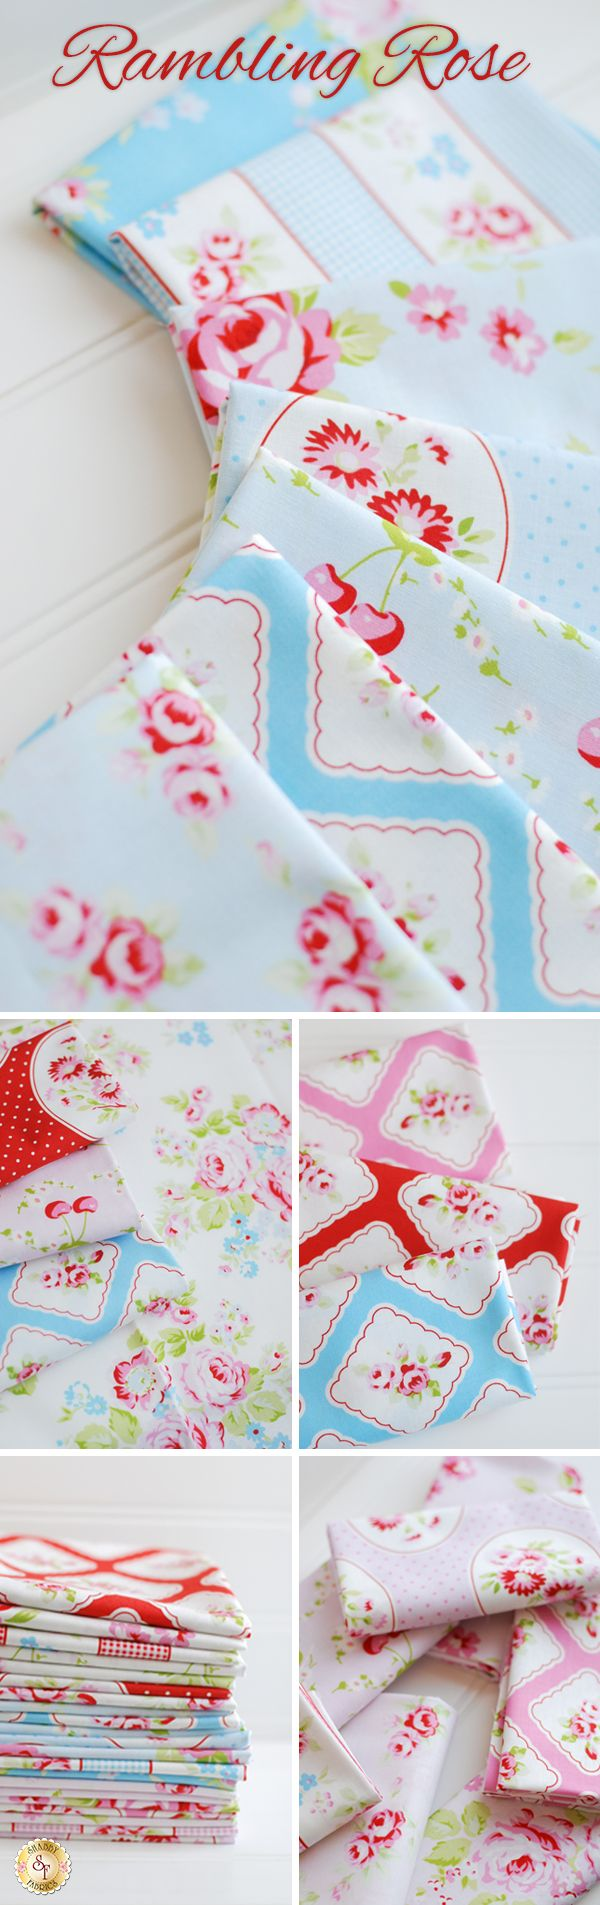 Rambling Rose by Tanya Whelan for Free Spirit Fabrics is a beautiful rose fabric collection available at Shabby Fabrics!